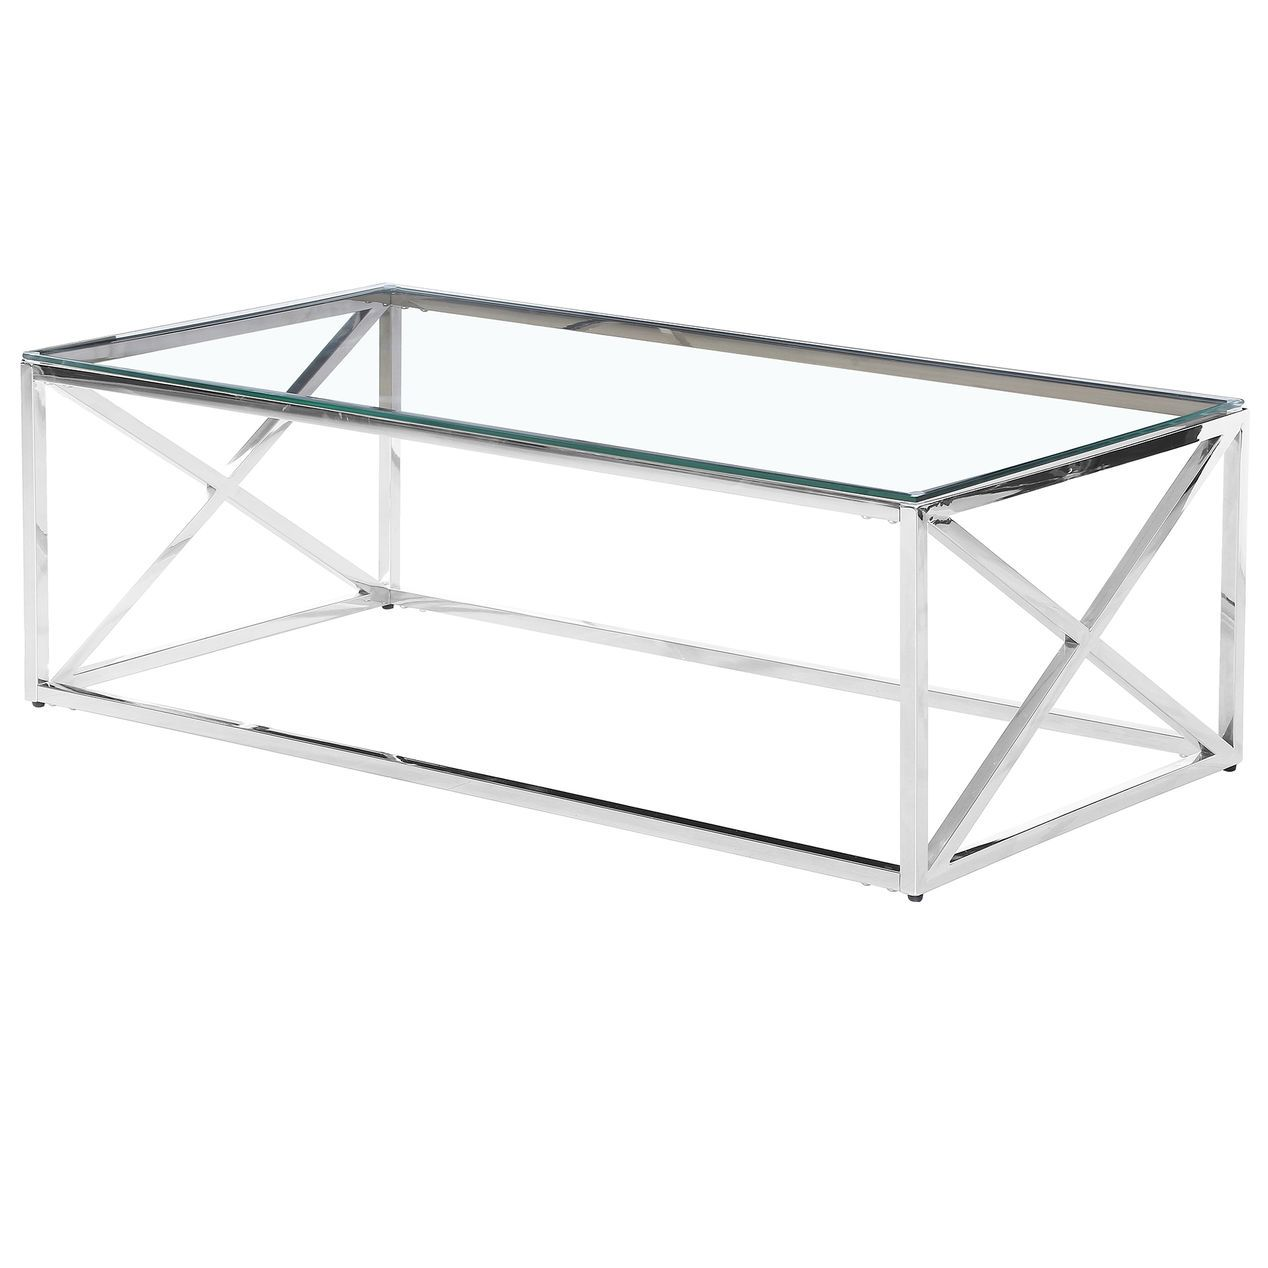 Lola Stainless Glass Cofee Tbl At Home Coffee Table Glass Coffee Table Drum Coffee Table [ 1268 x 1268 Pixel ]